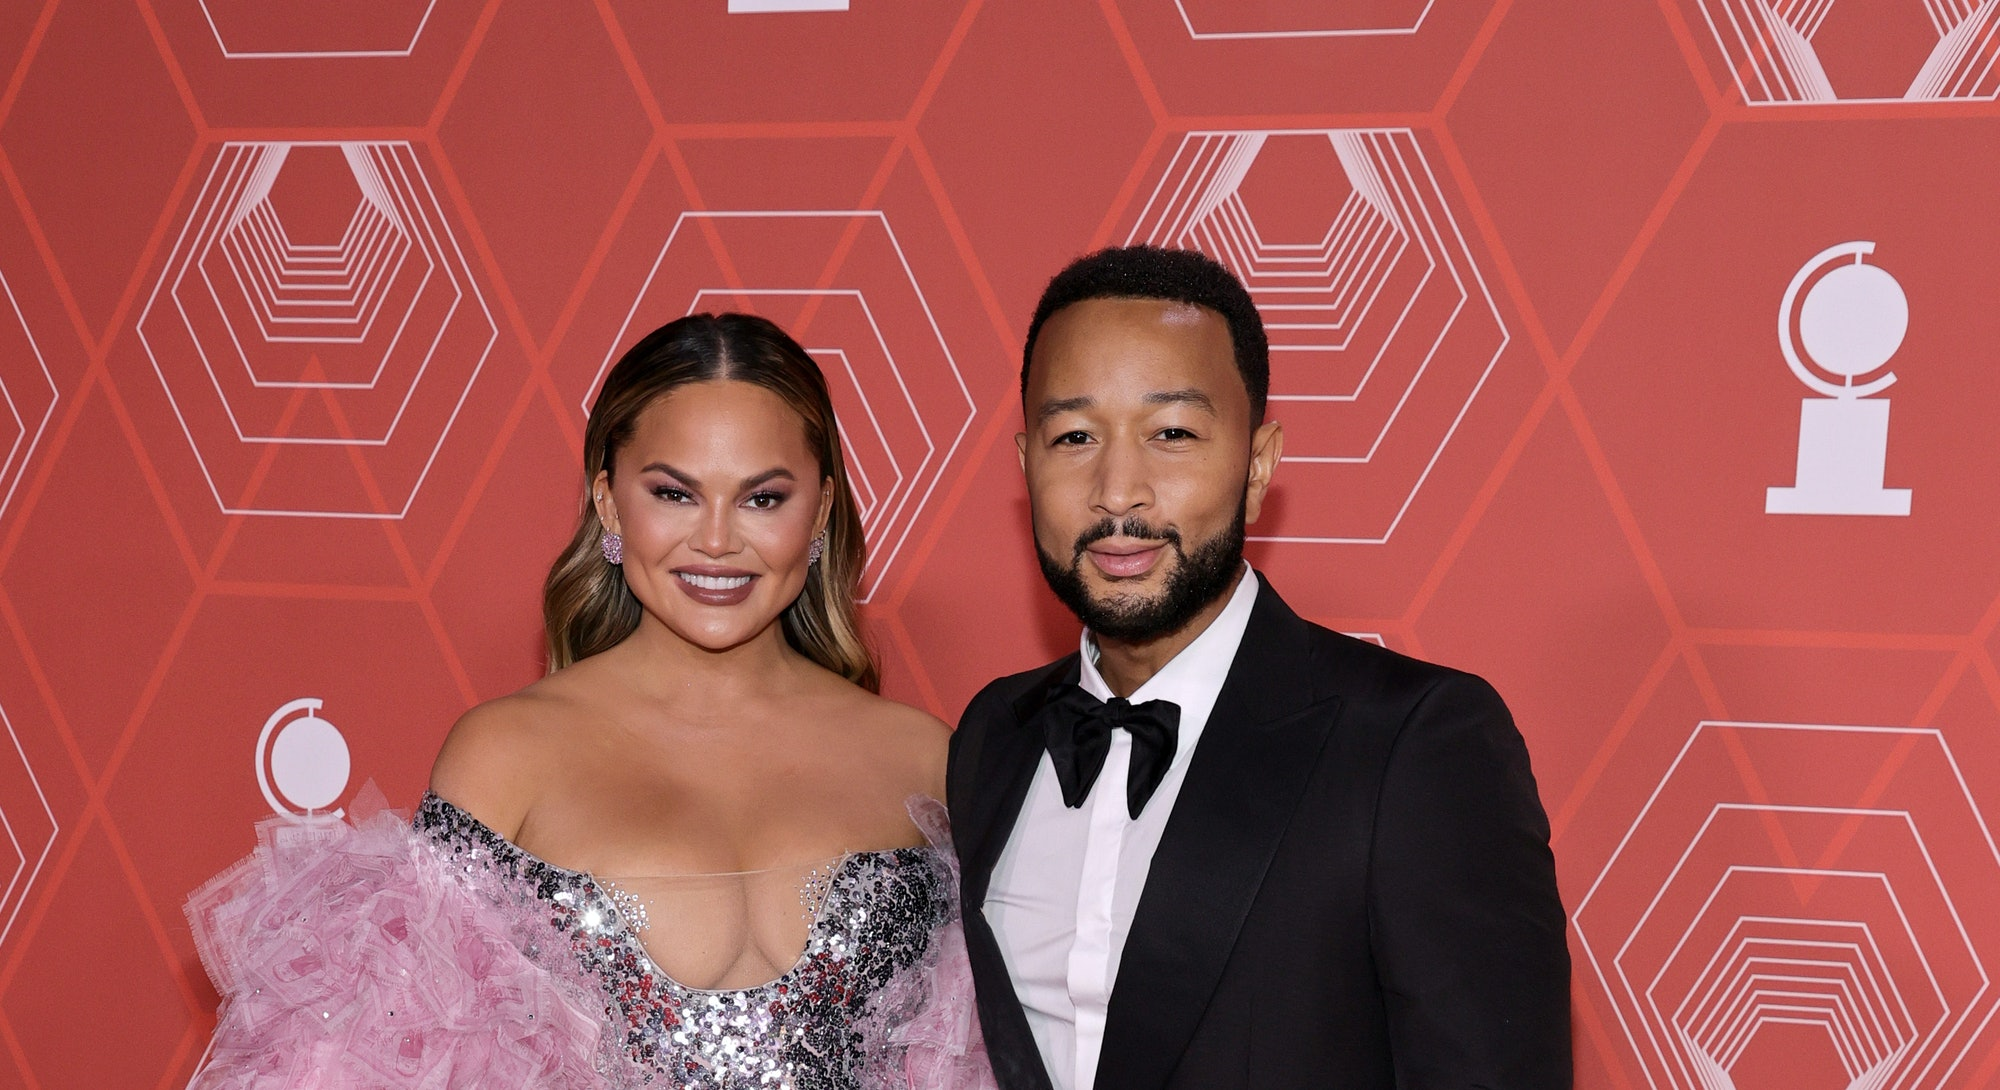 The 2021 Tonys red carpet looks were delightfully over-the-top, from Chrissy Teigen's sequin gown to...